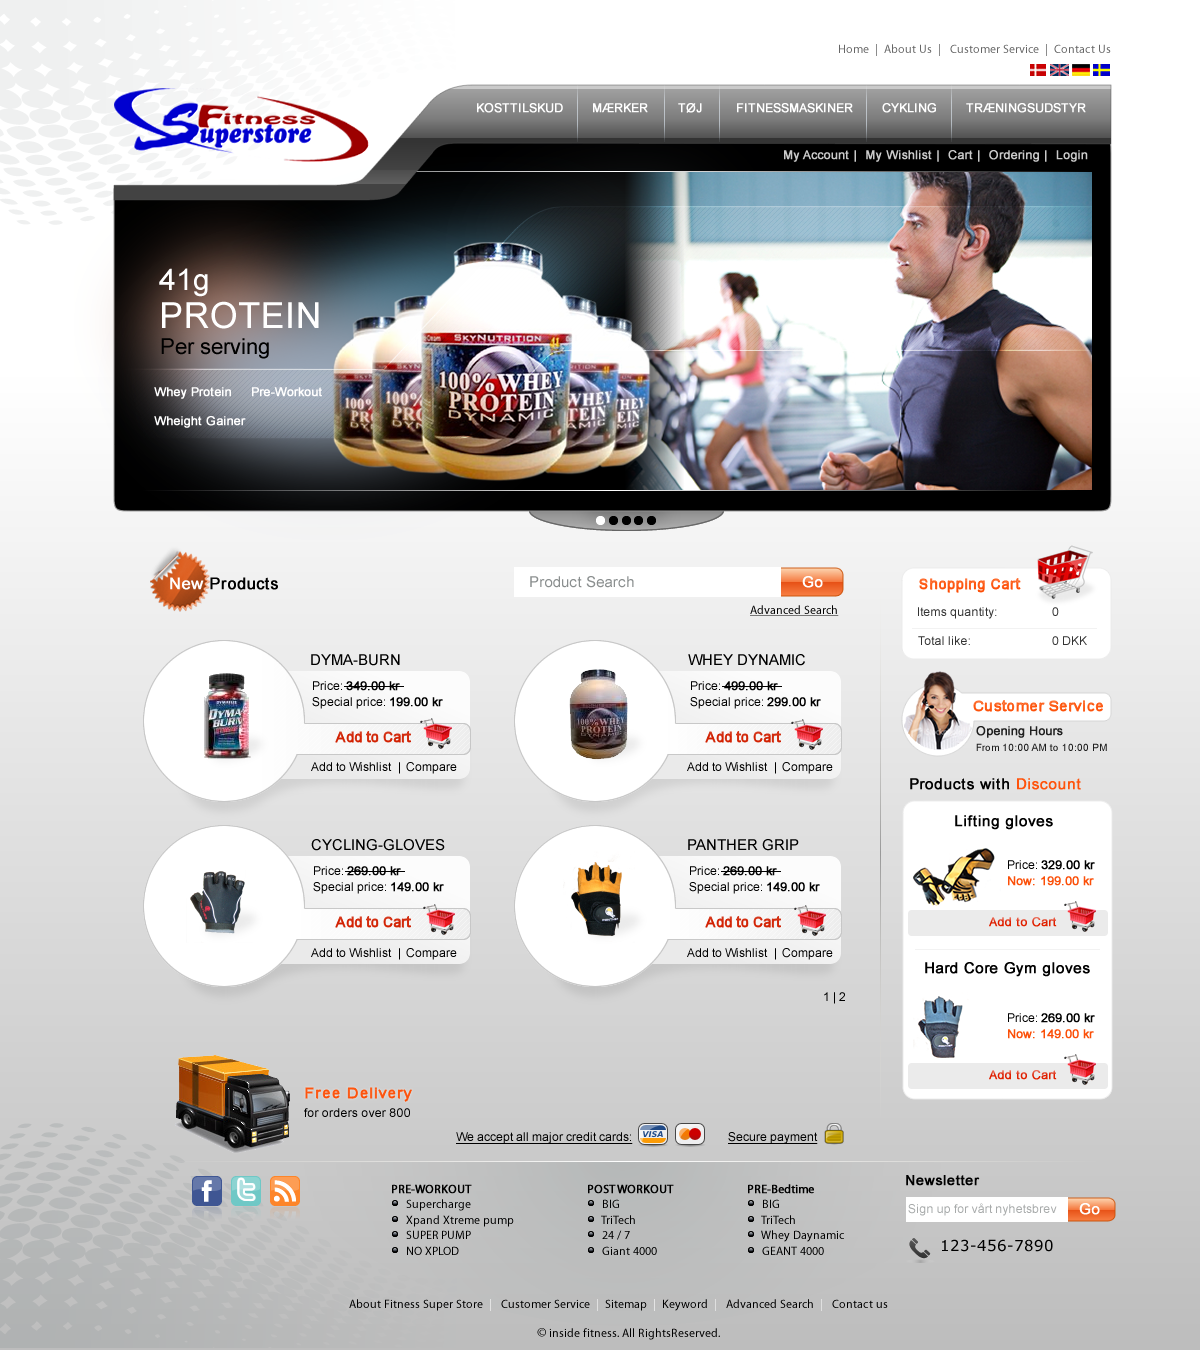 fitnesssuperstore need new design  - Sports